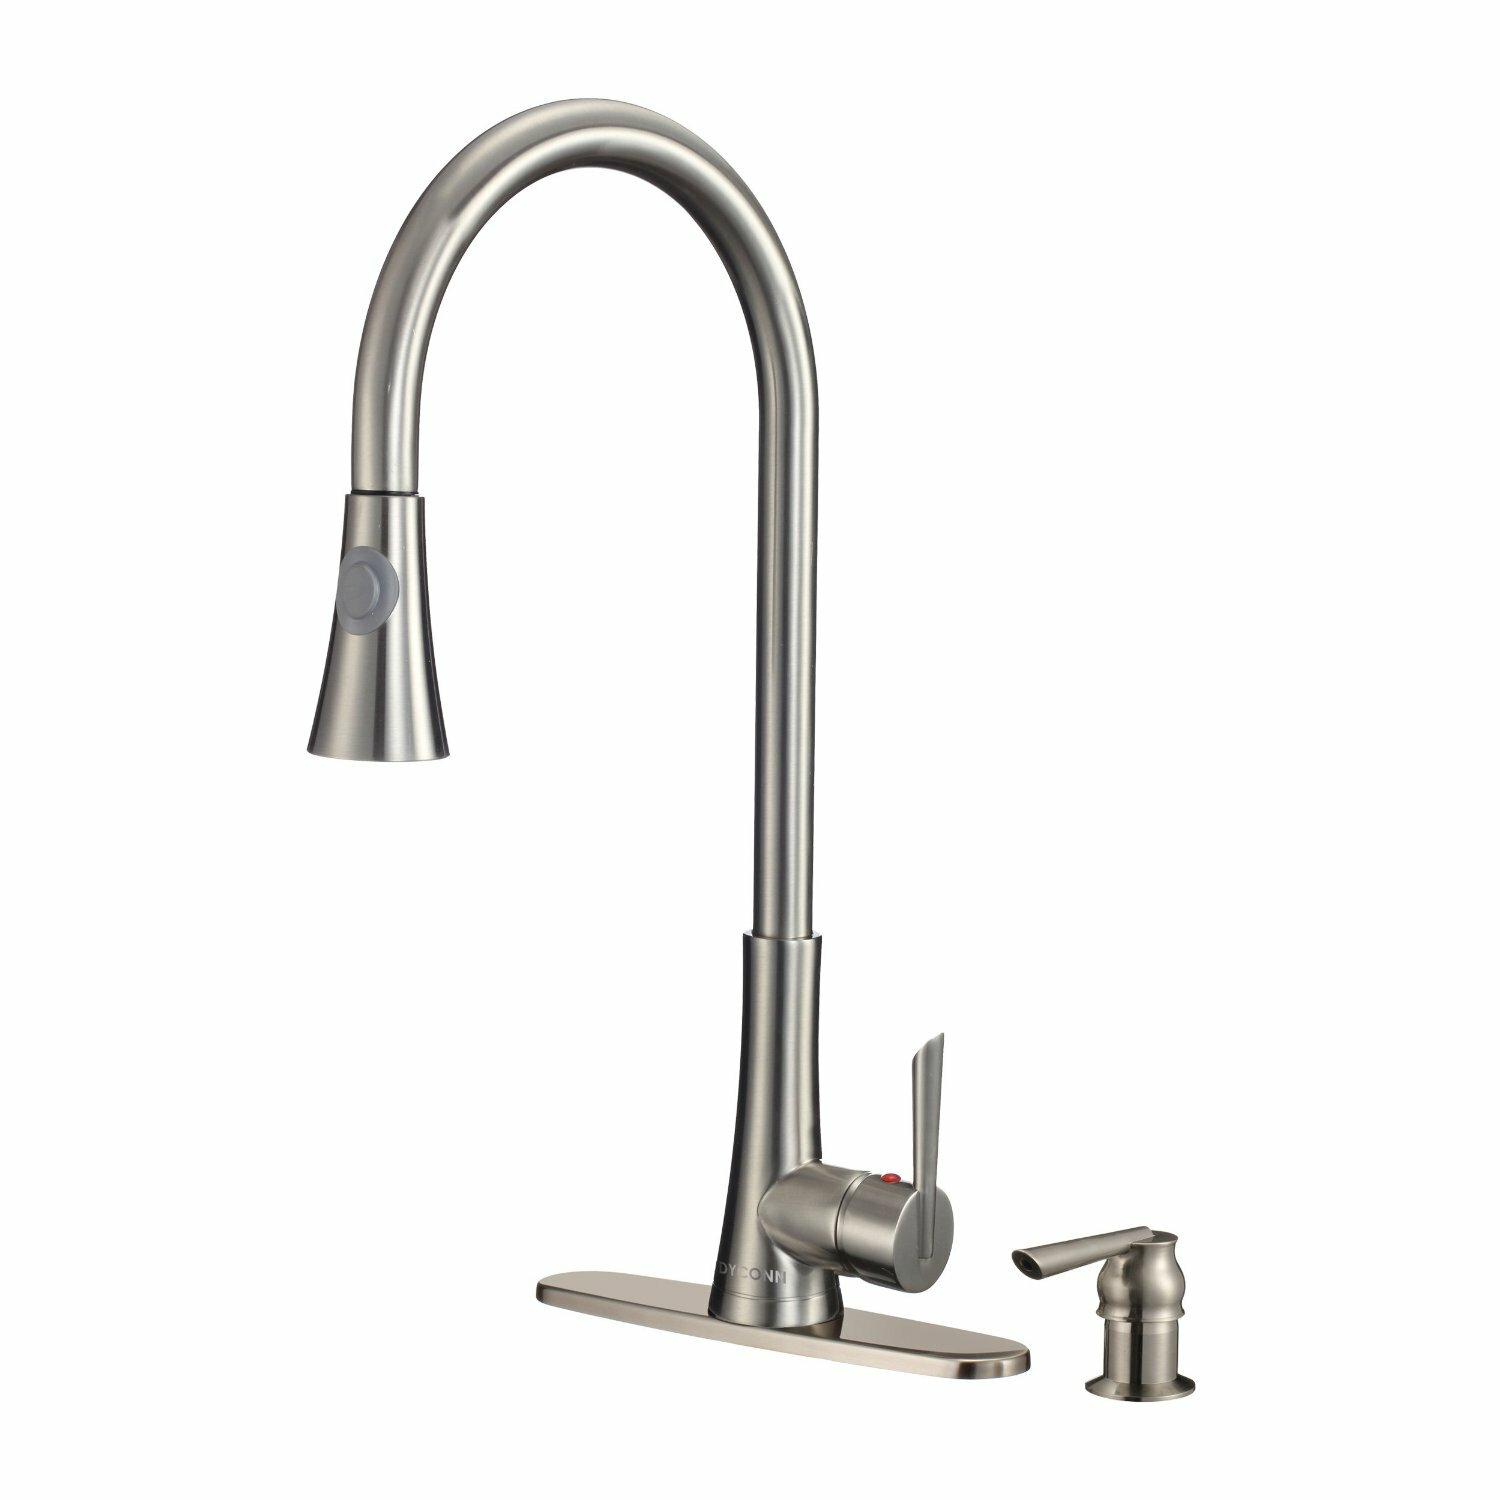 dyconn faucet celtic single handle pull out kitchen faucet best pull out kitchen faucet